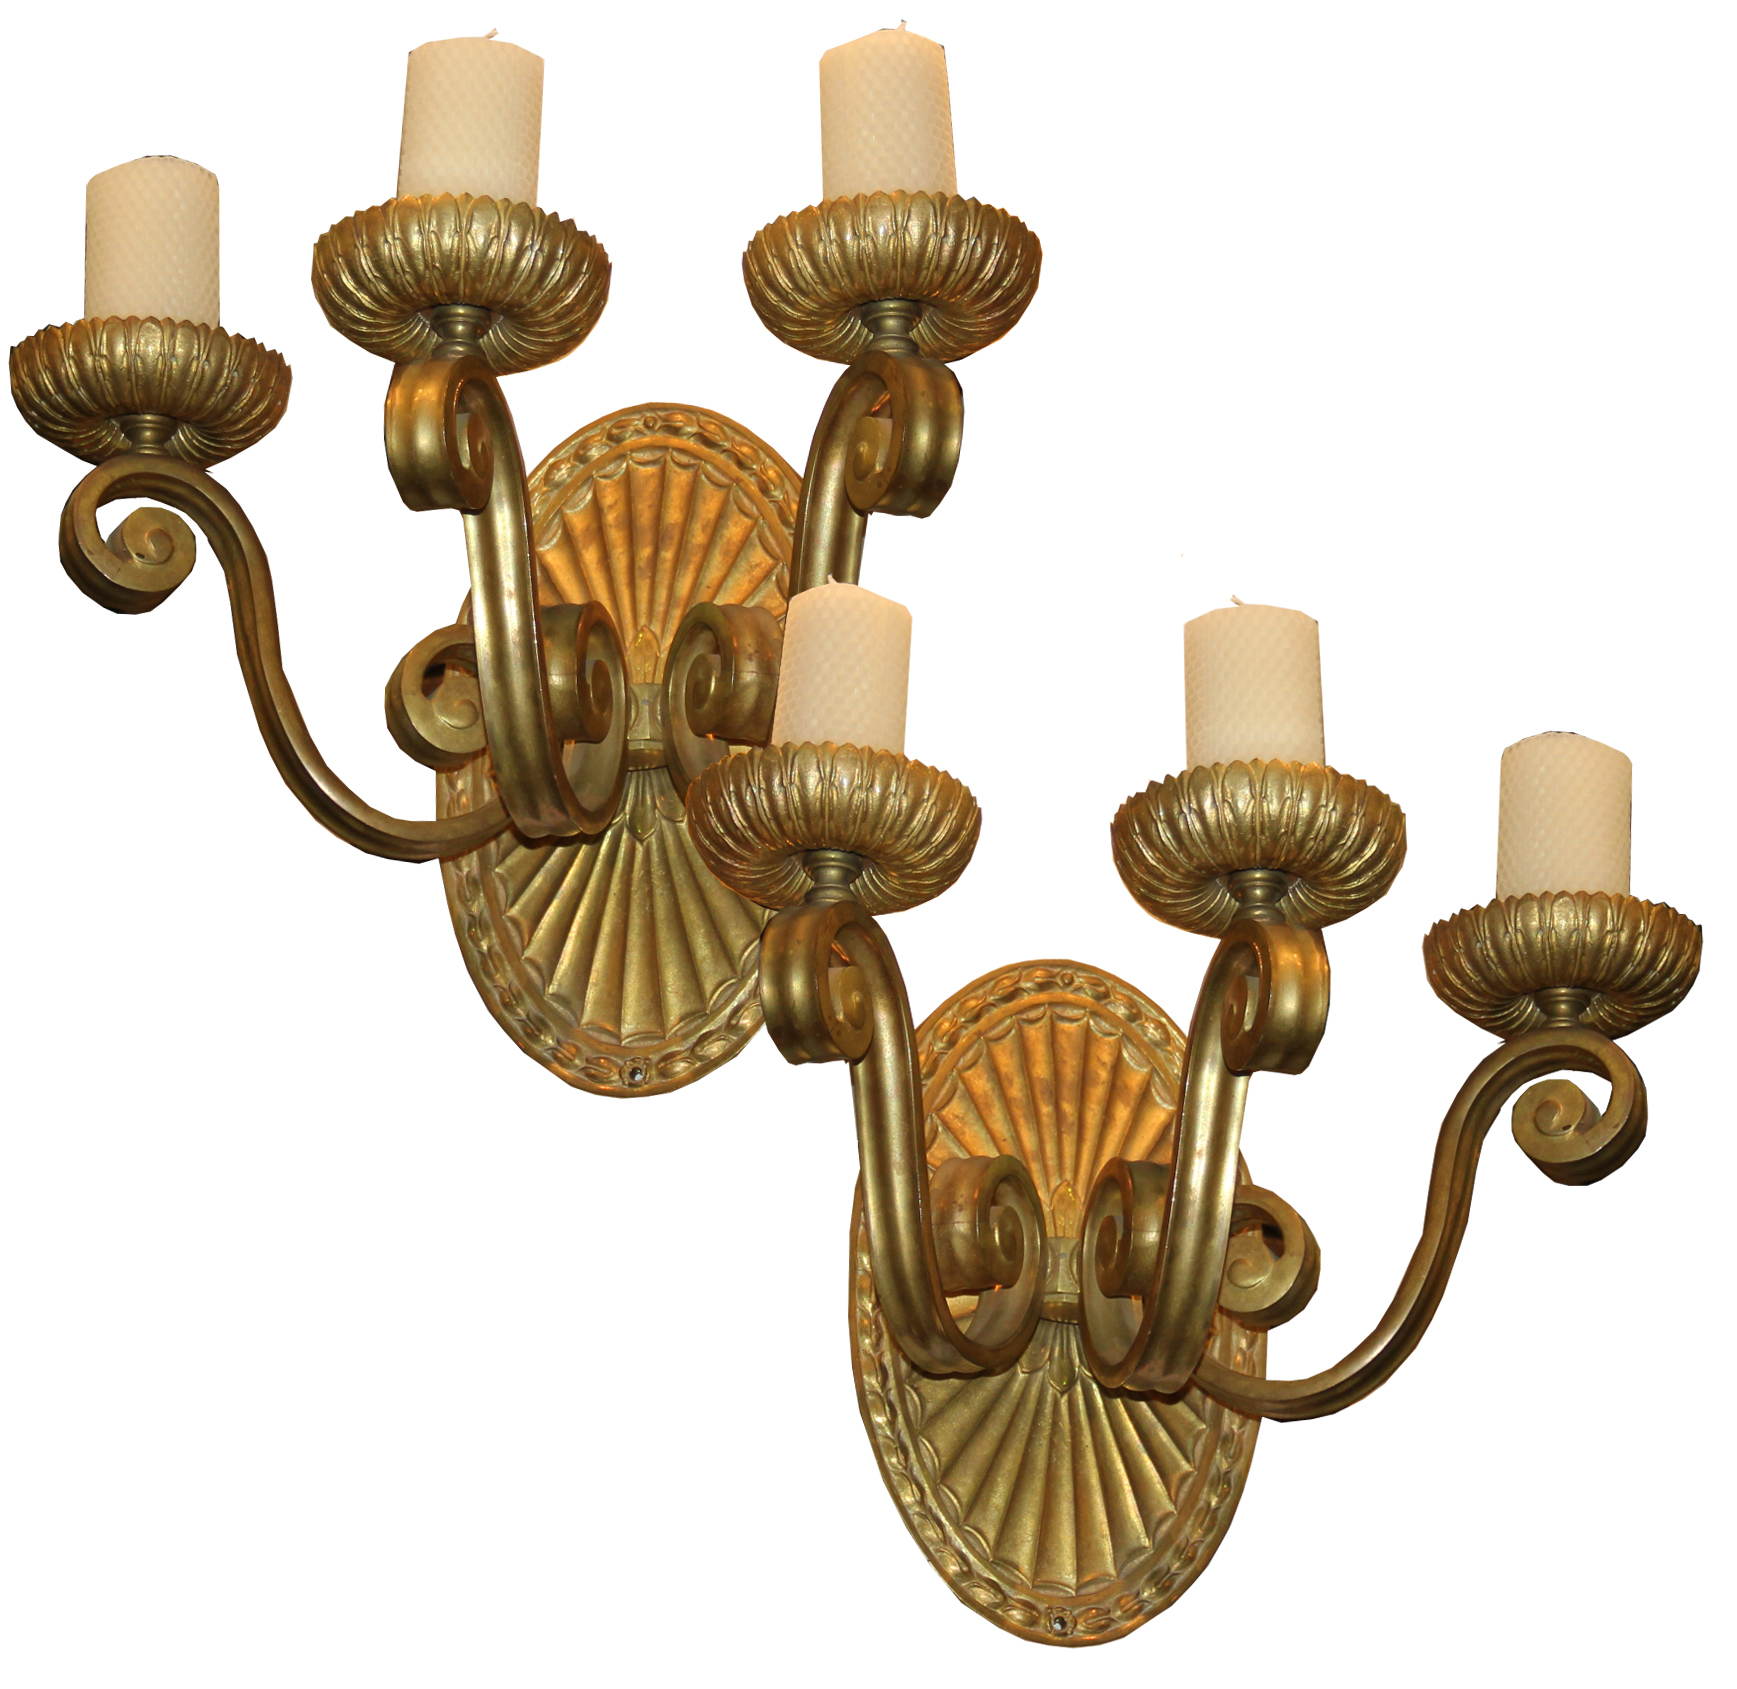 A Pair of 19th Century Italian Brass Wall Sconces No. 4458